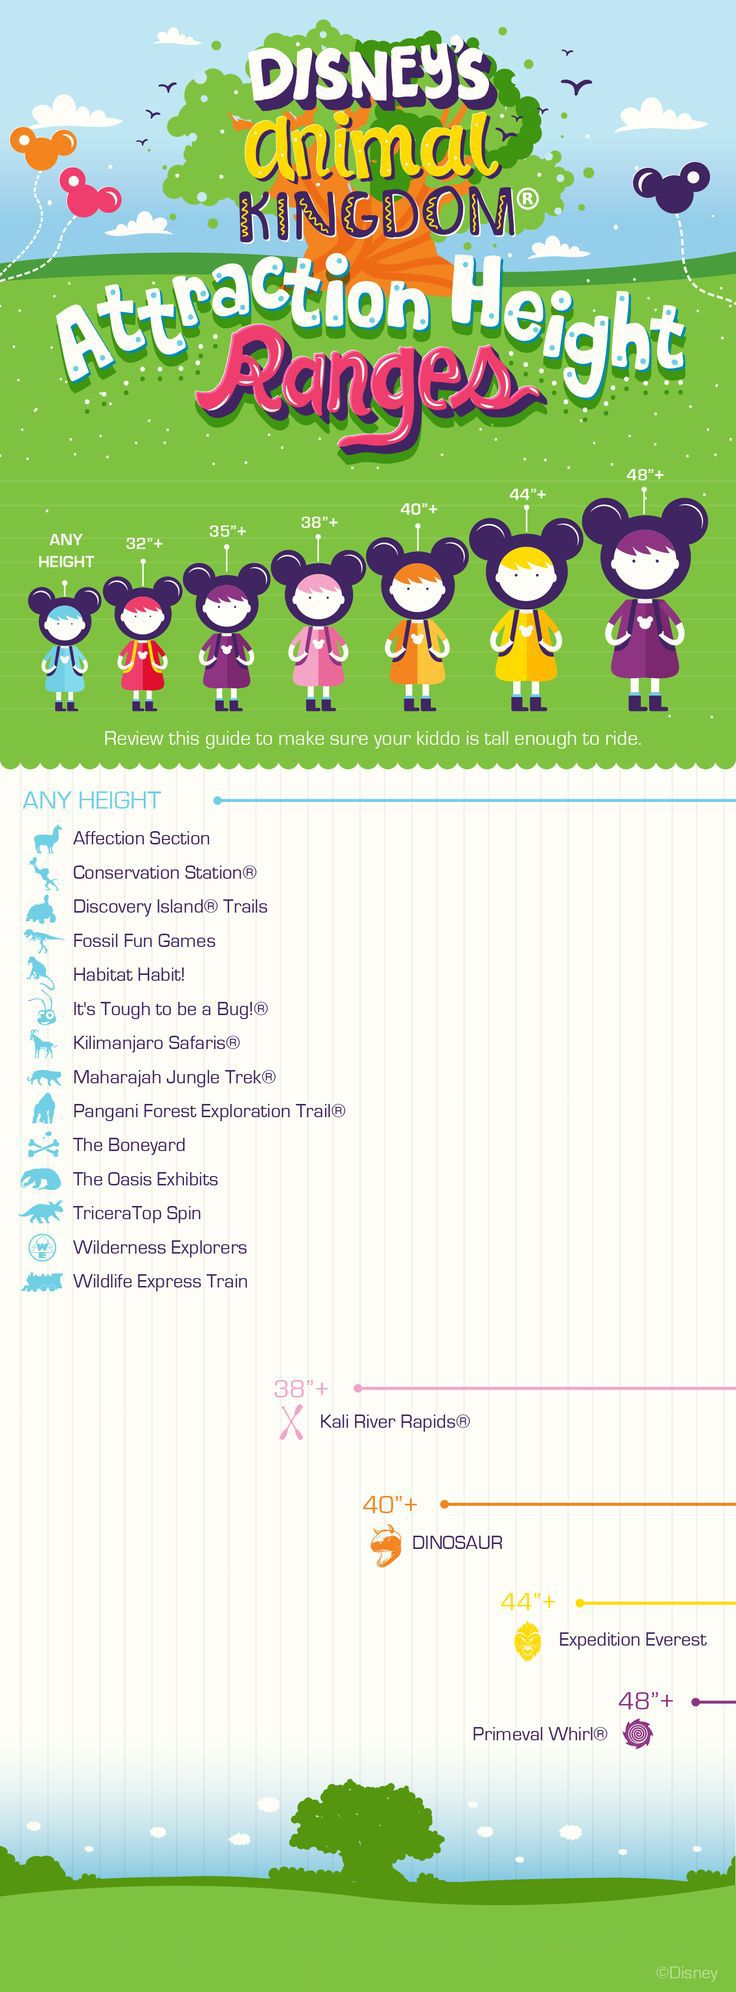 Make sure your little ones are tall enough to ride with this Disney's Animal Kingdom attraction height guide!